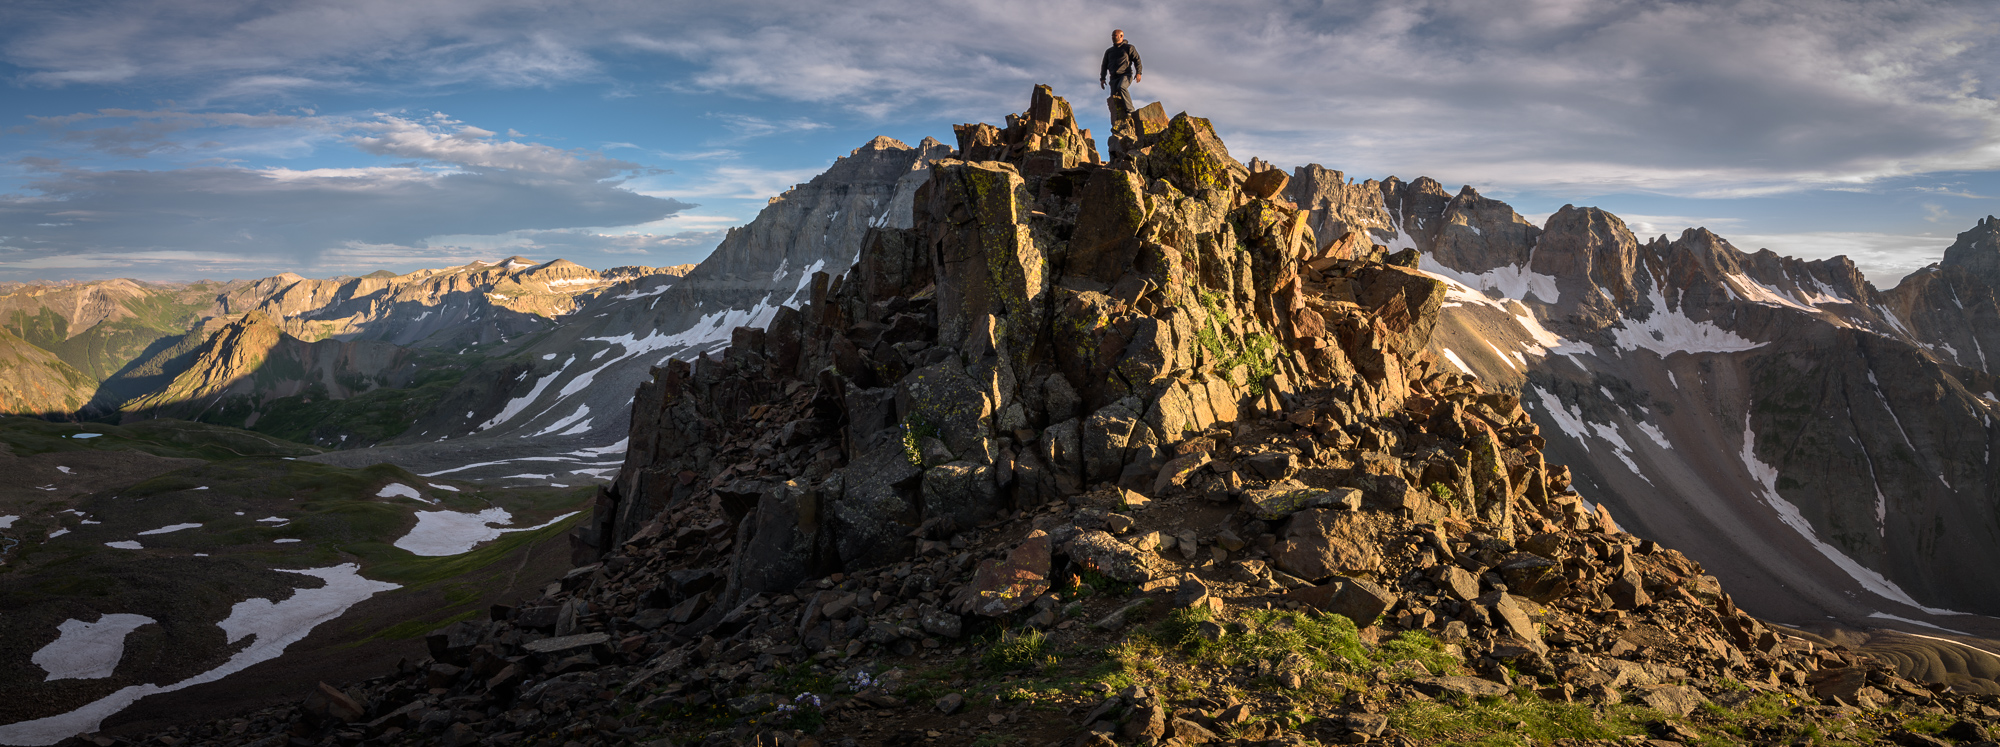 Joseph above Blue Lakes Pass at over 13,000 feet in the San Juan Mountains of Colorado